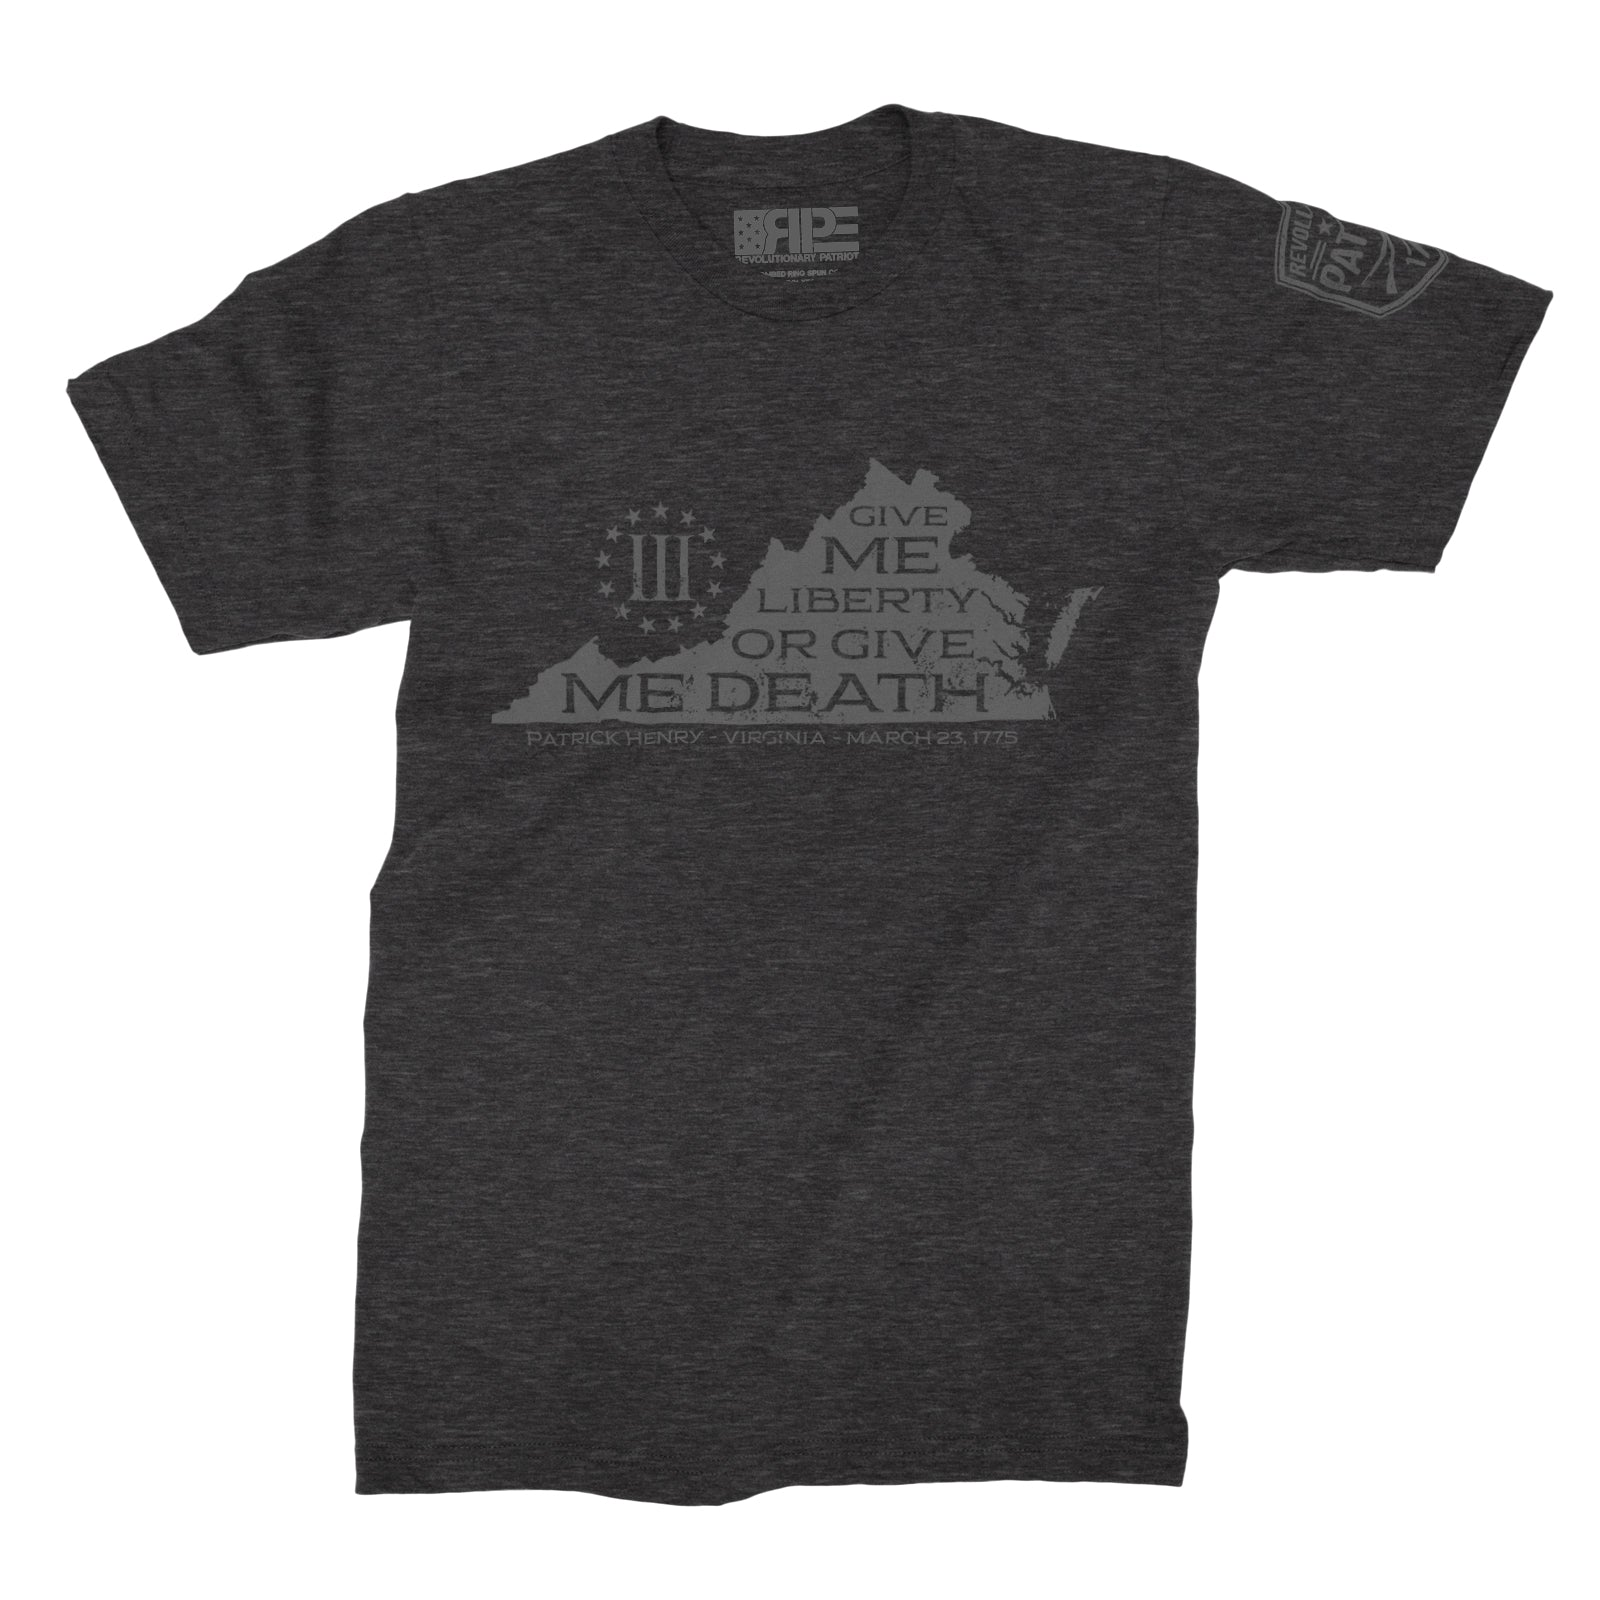 Give Me Liberty - VA Three Percenters (Dark Grey Heather) - Revolutionary Patriot